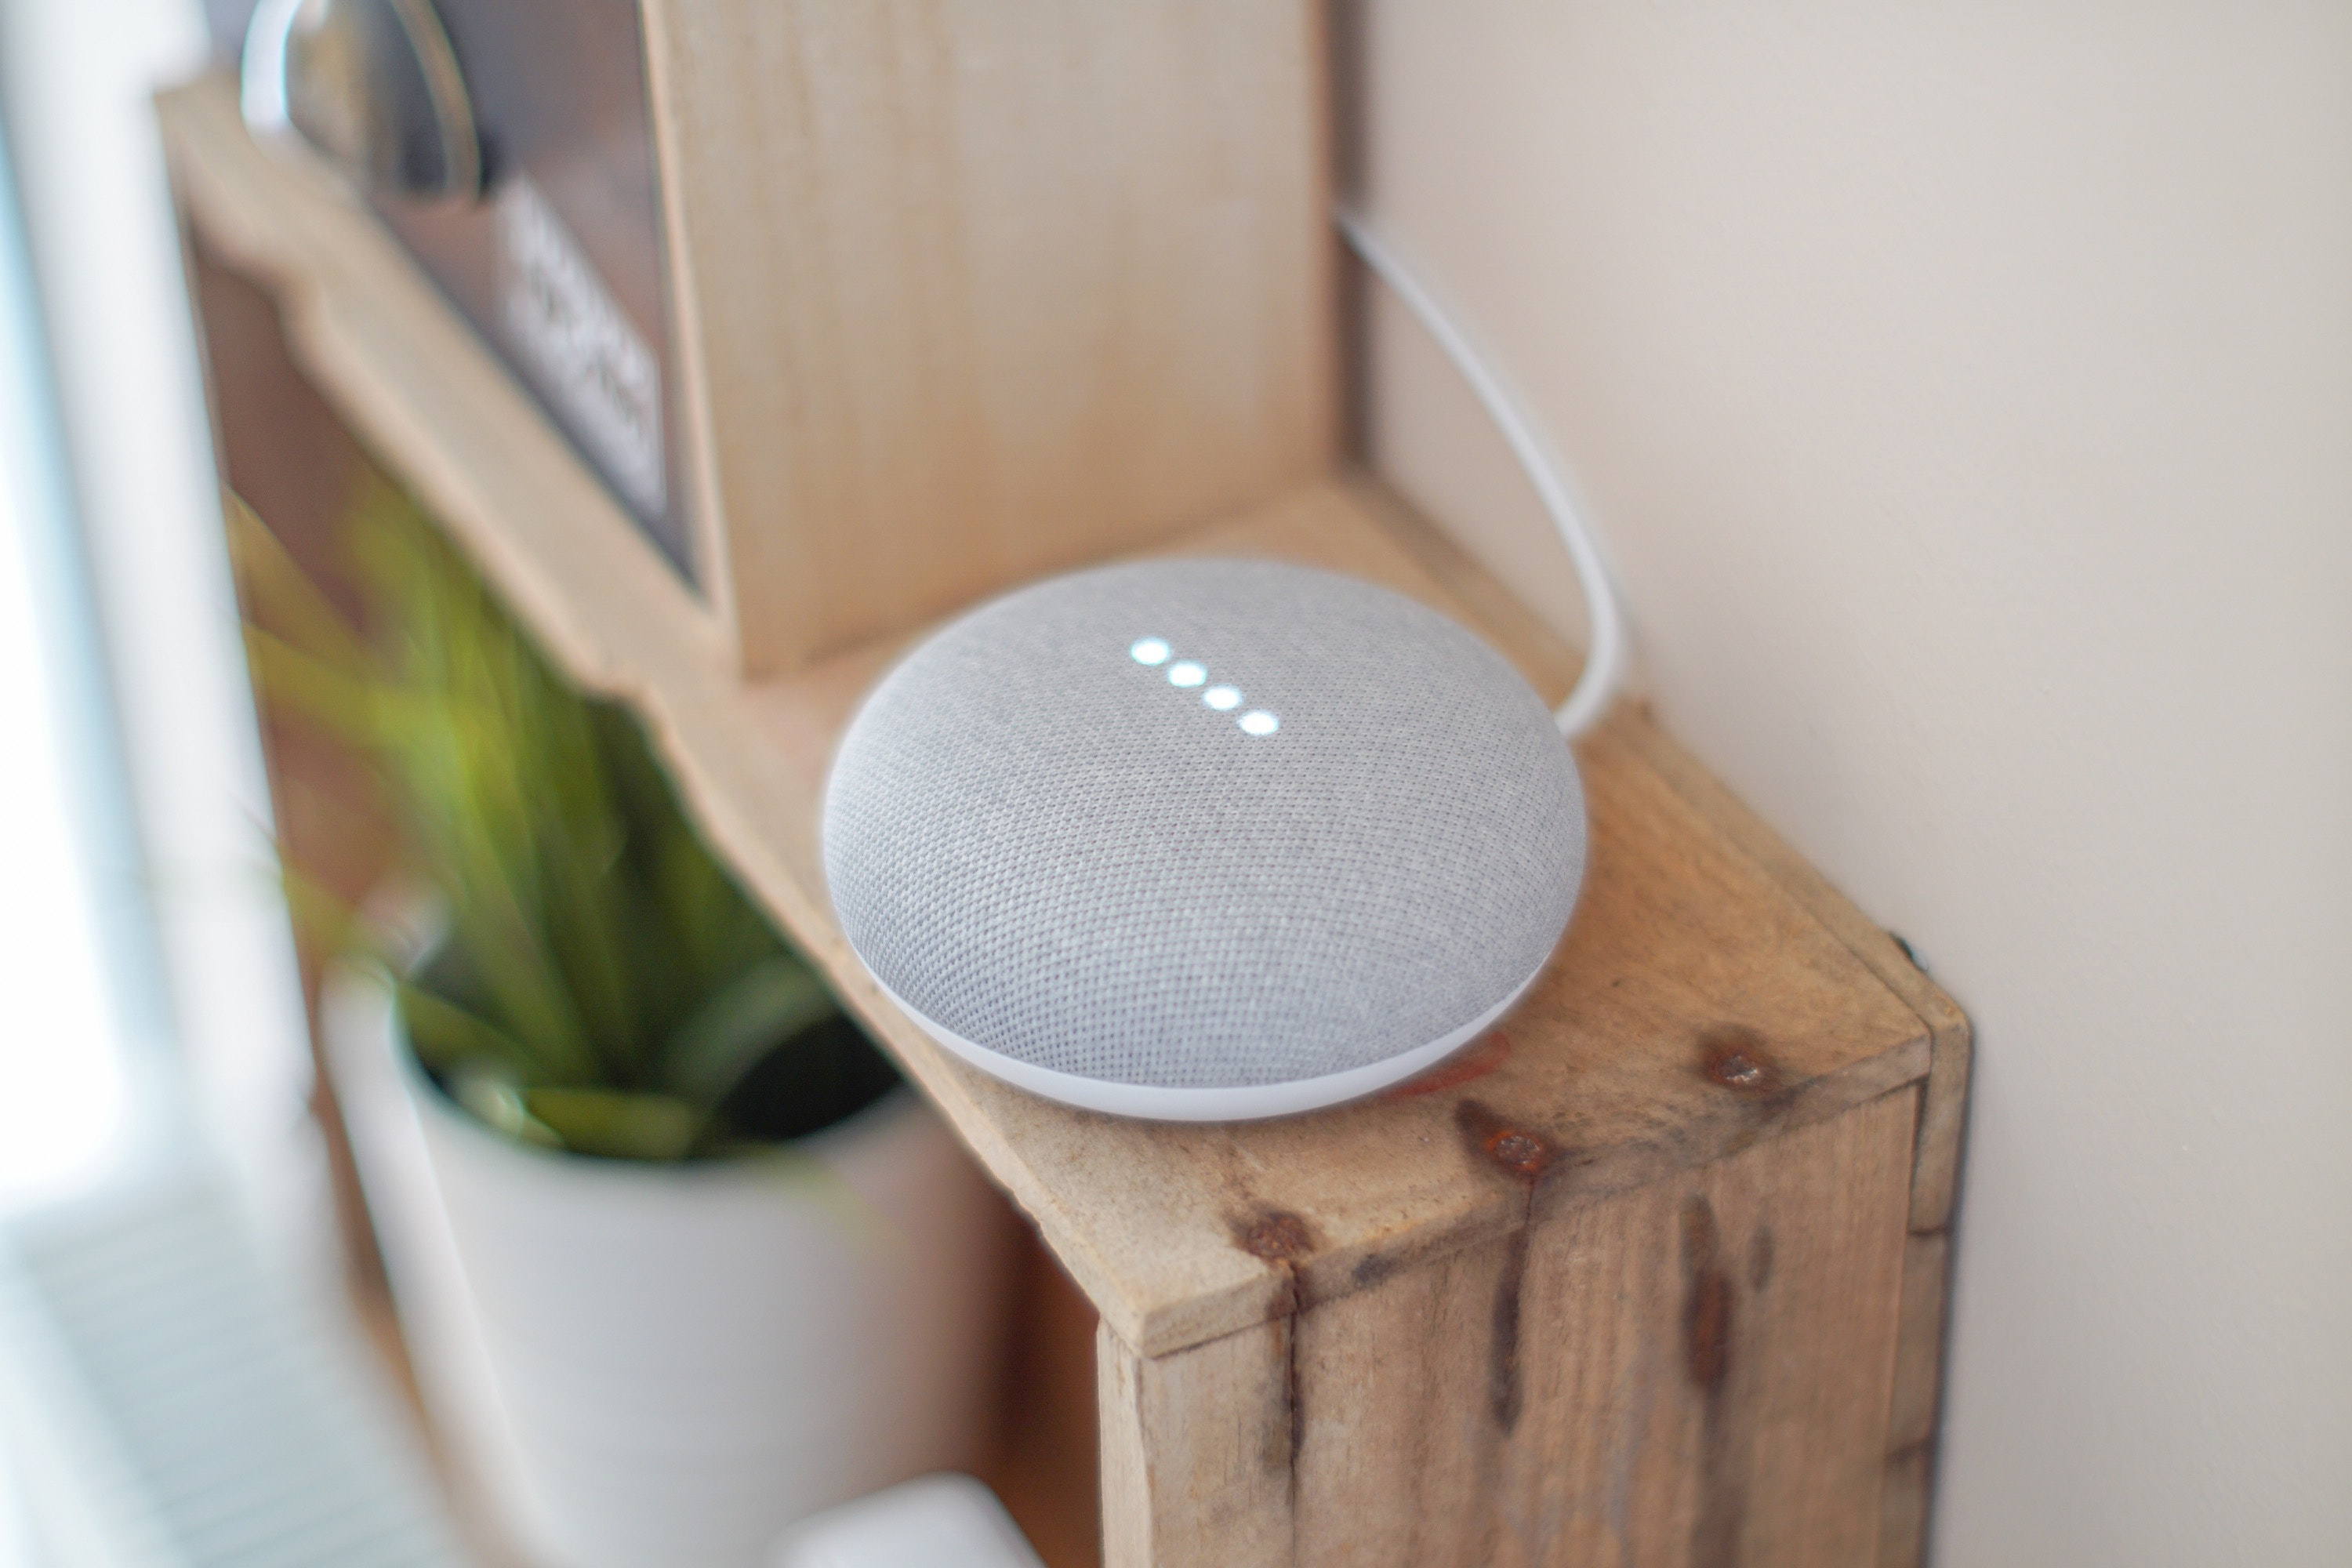 Voice Shopping with Google Home